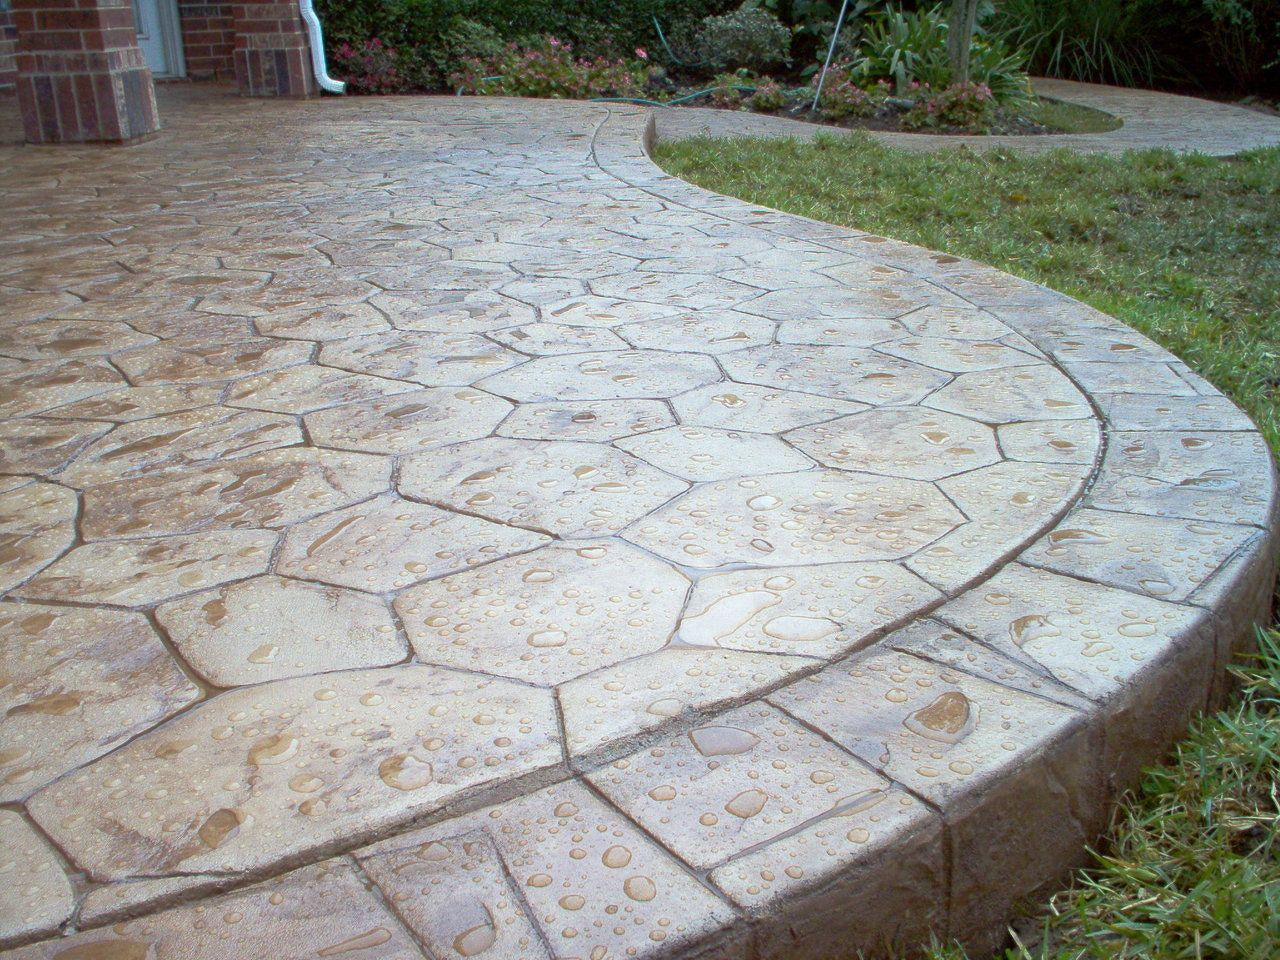 Patio Flooring Pattern. Complete Pool, Tile, Coping, Diamond Brite, And